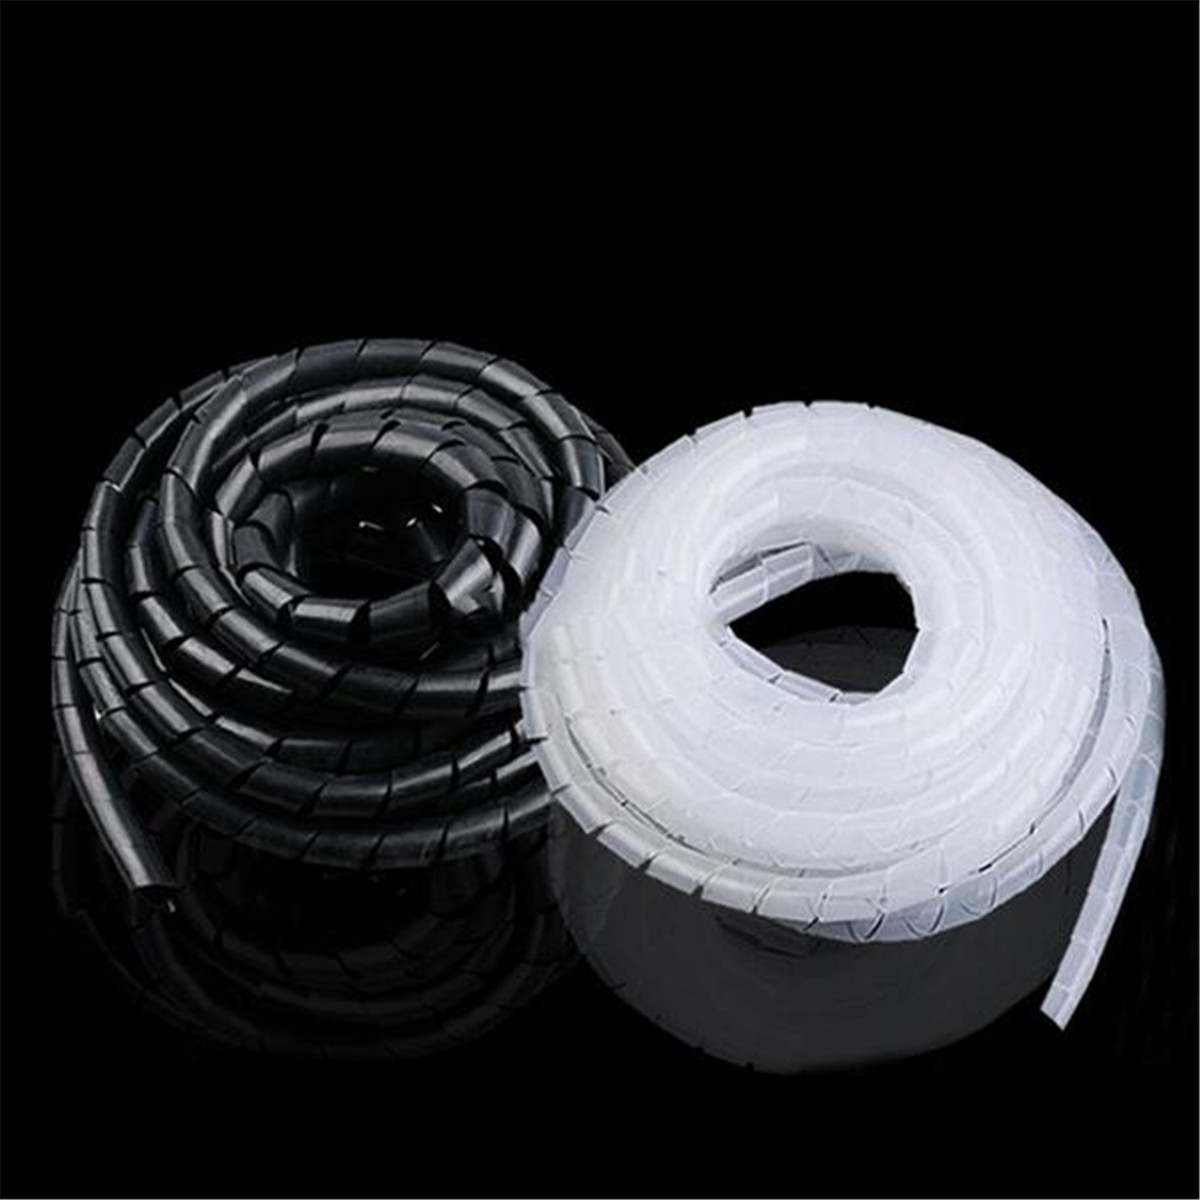 2M 6mm Spiral Cable Wrap Tidy Hide Binding Wire Management PC TV ...